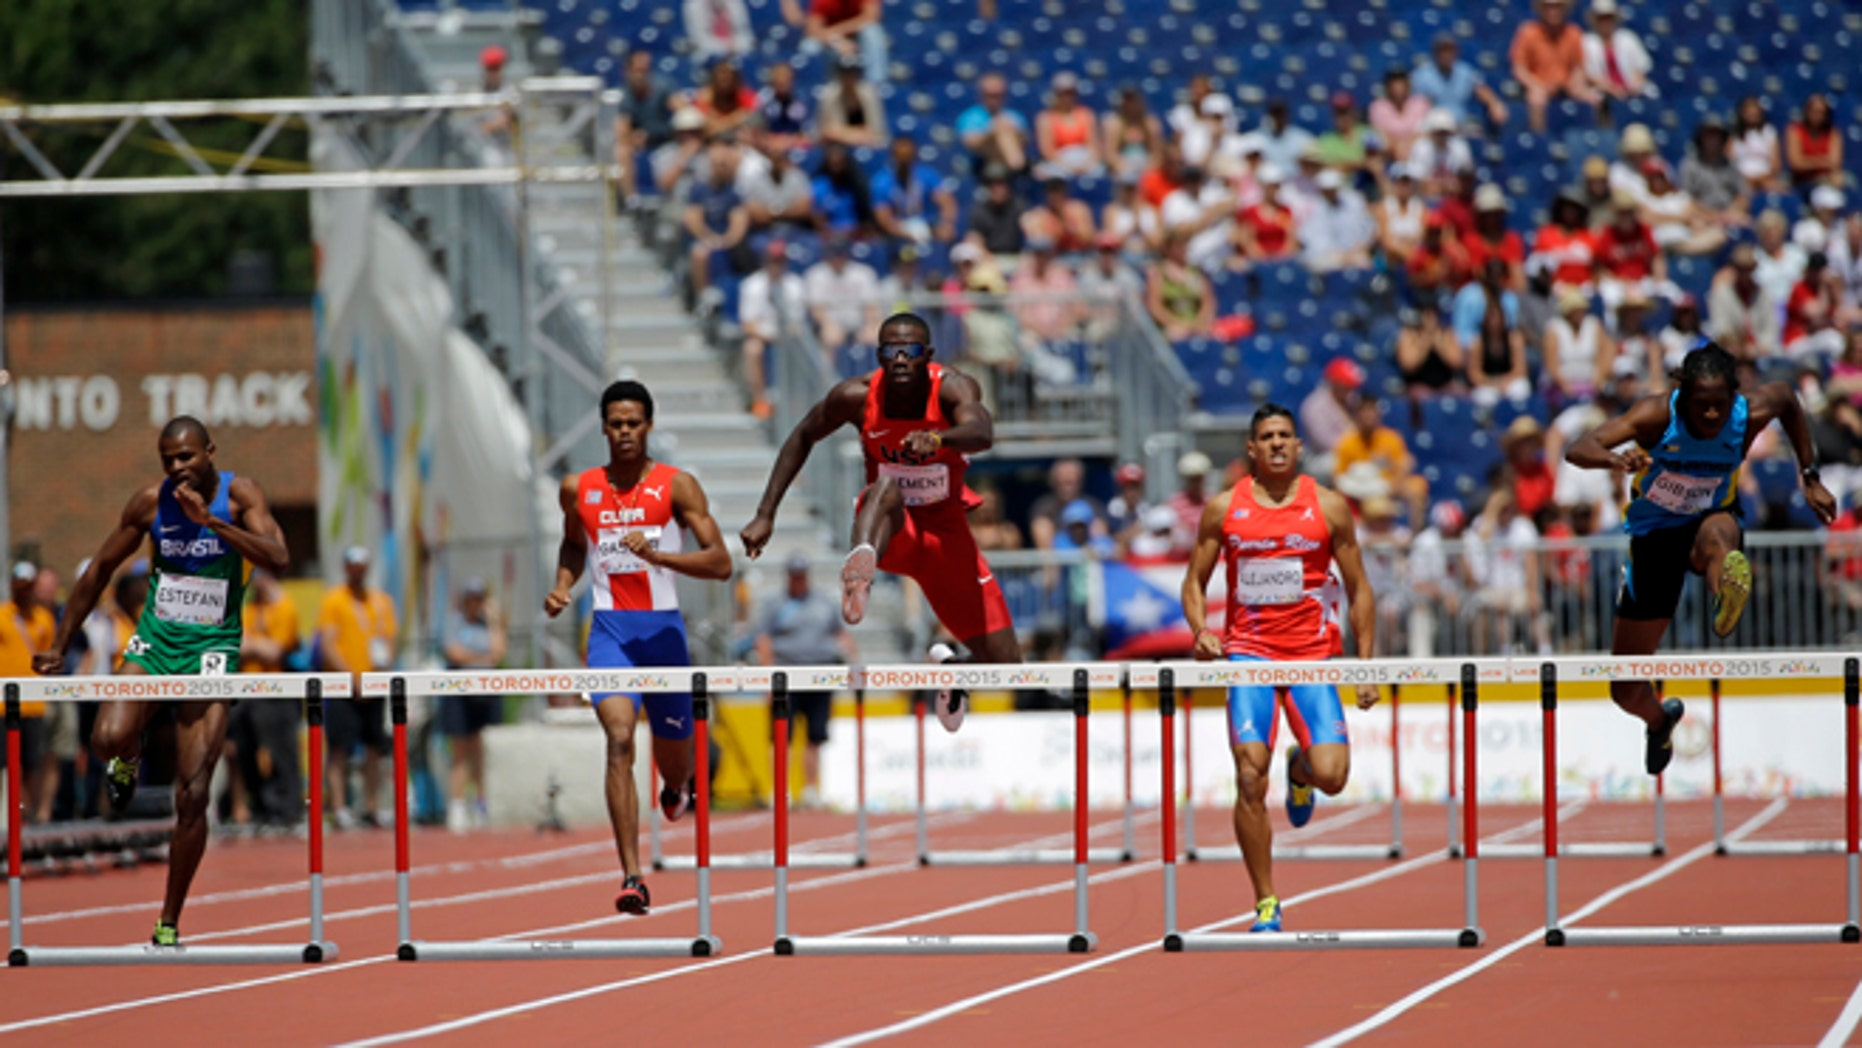 USA's Kerron Clement jumps over a hurdle and wins during a men's 400m hurdles semifinal race at the Pan Am Games in Toronto, Wednesday, July 22, 2015. (AP Photo/Mark Humphrey)